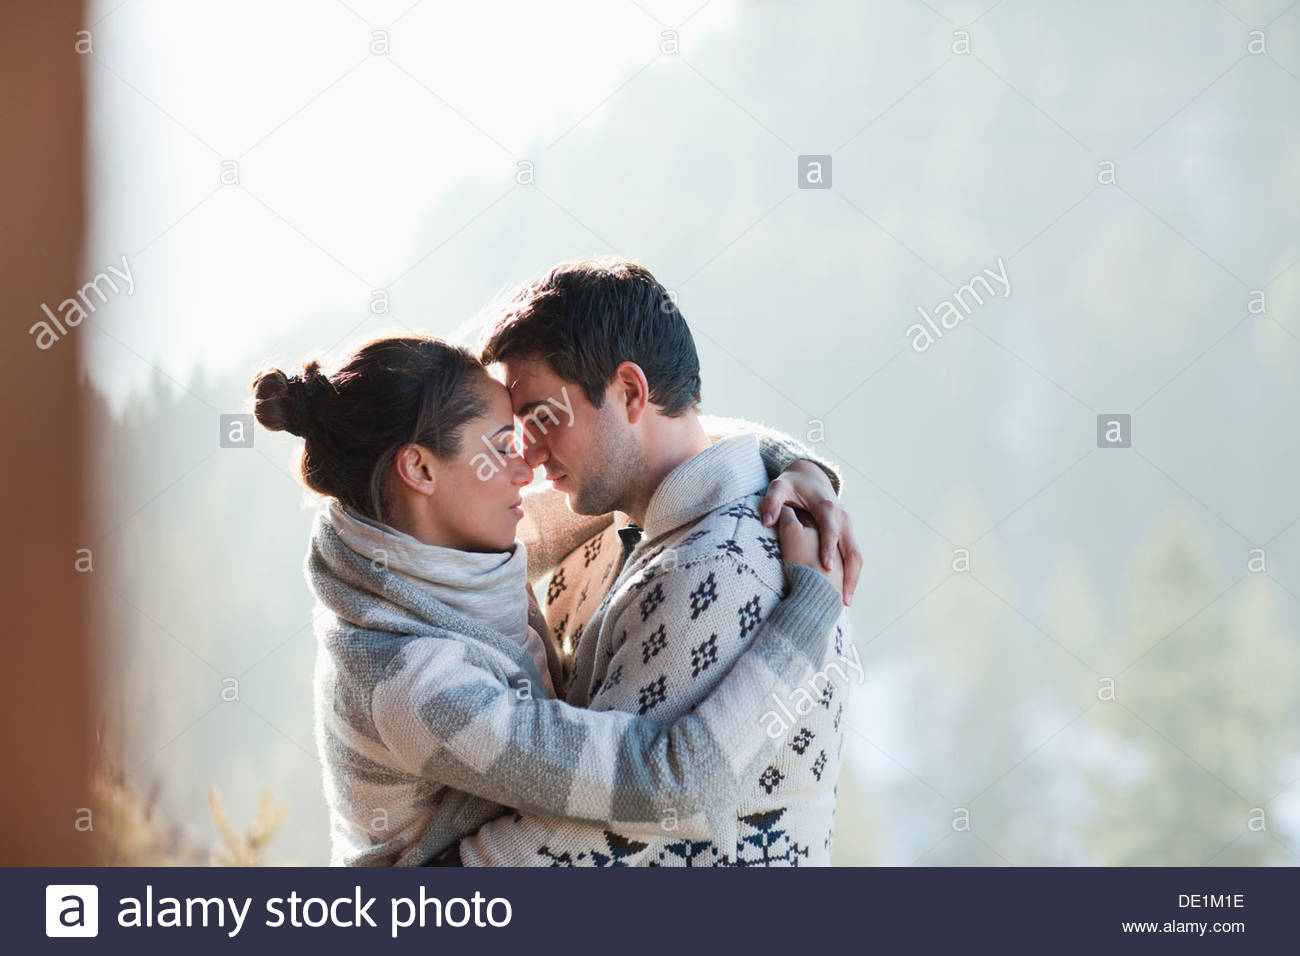 Couple hugging face to face outdoors - Stock Image